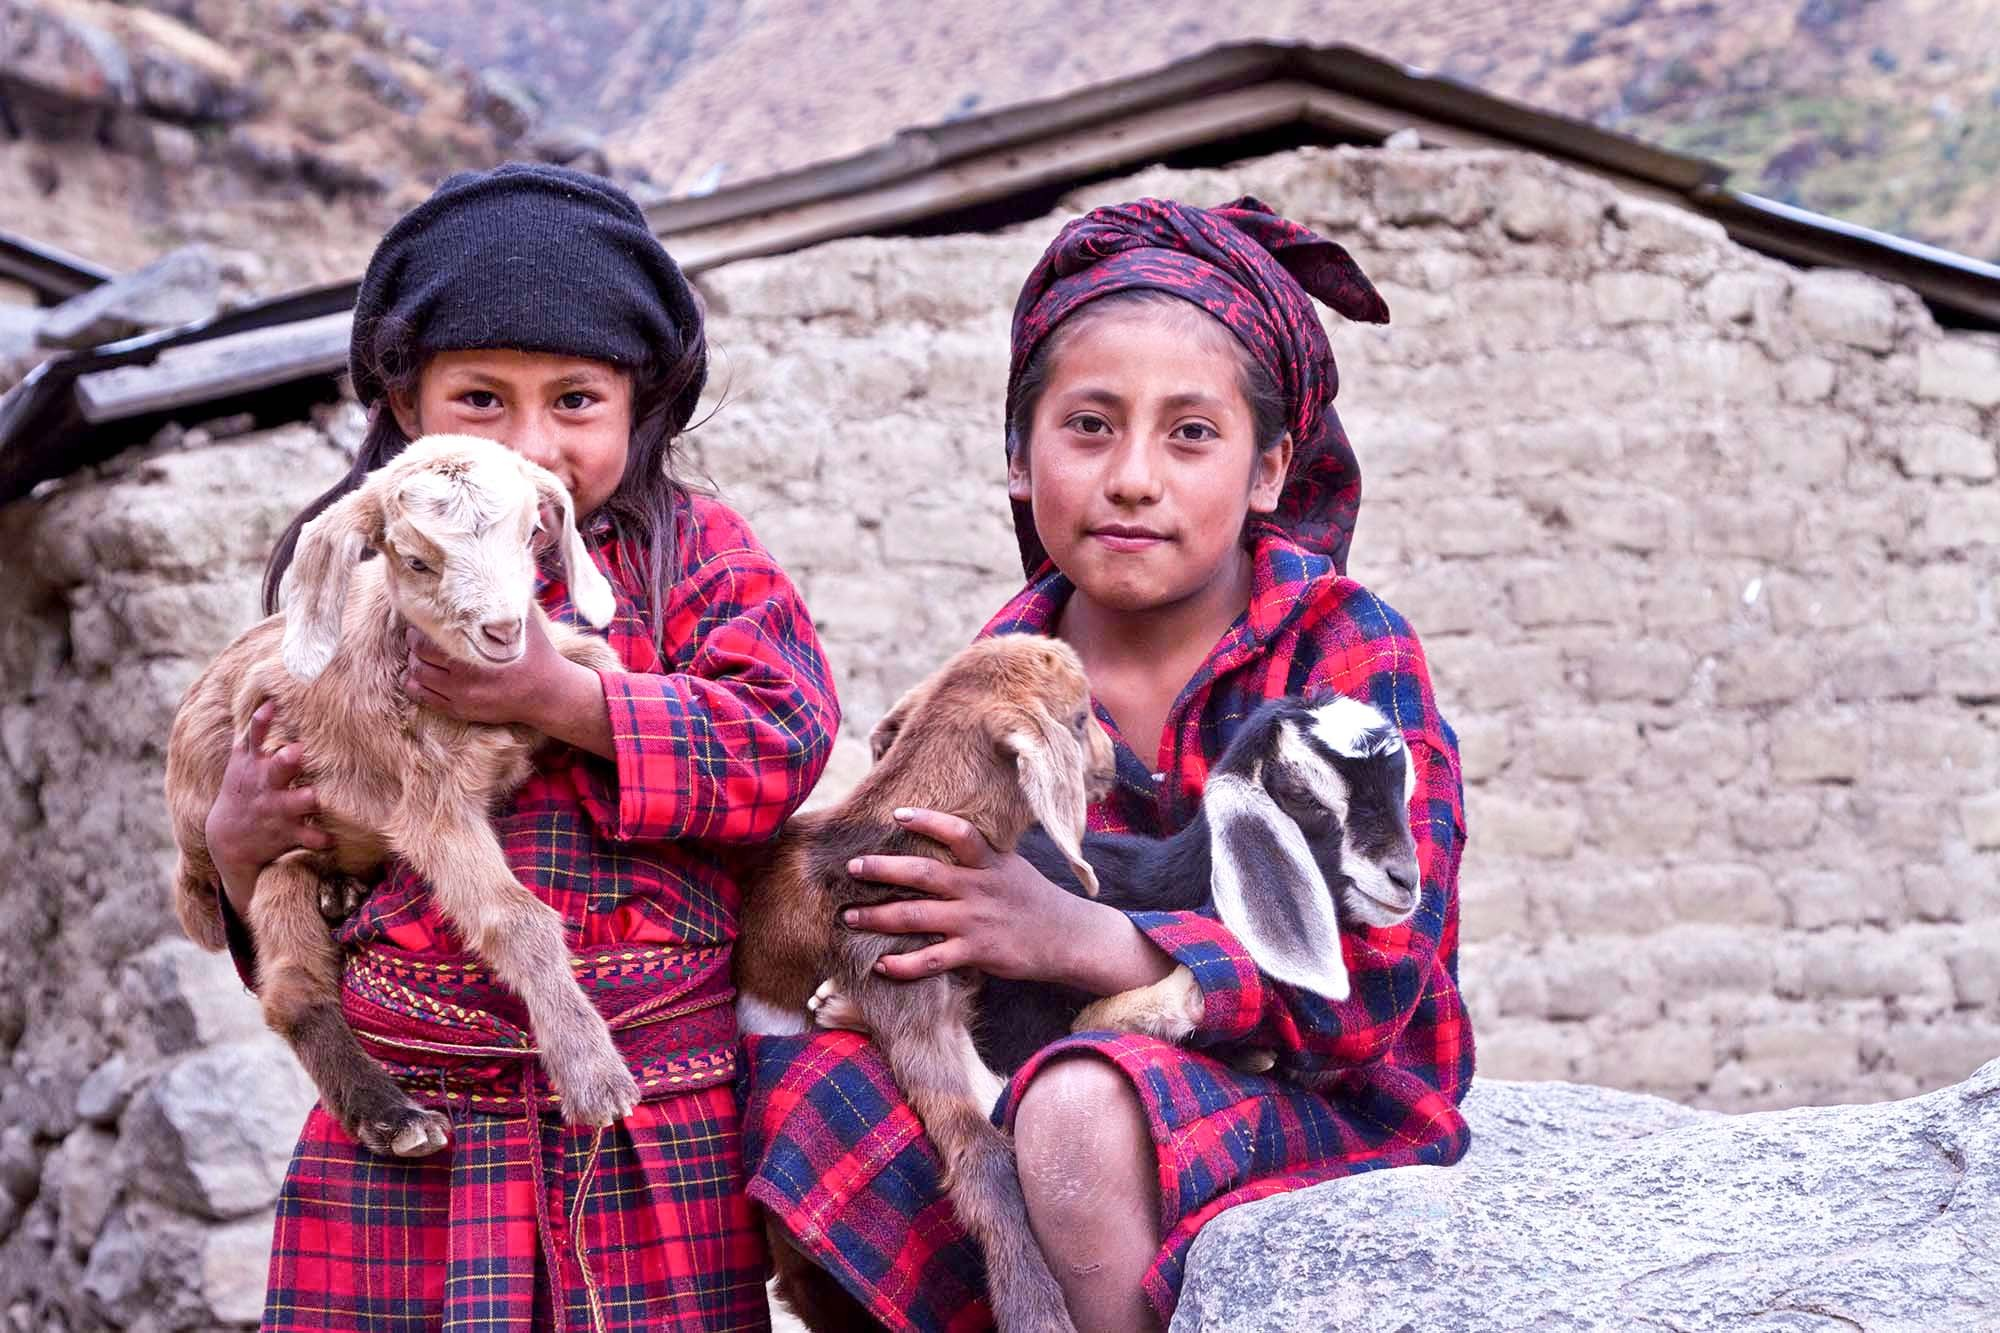 Children help with daily chores after school taking their herds to graze in the mountains.